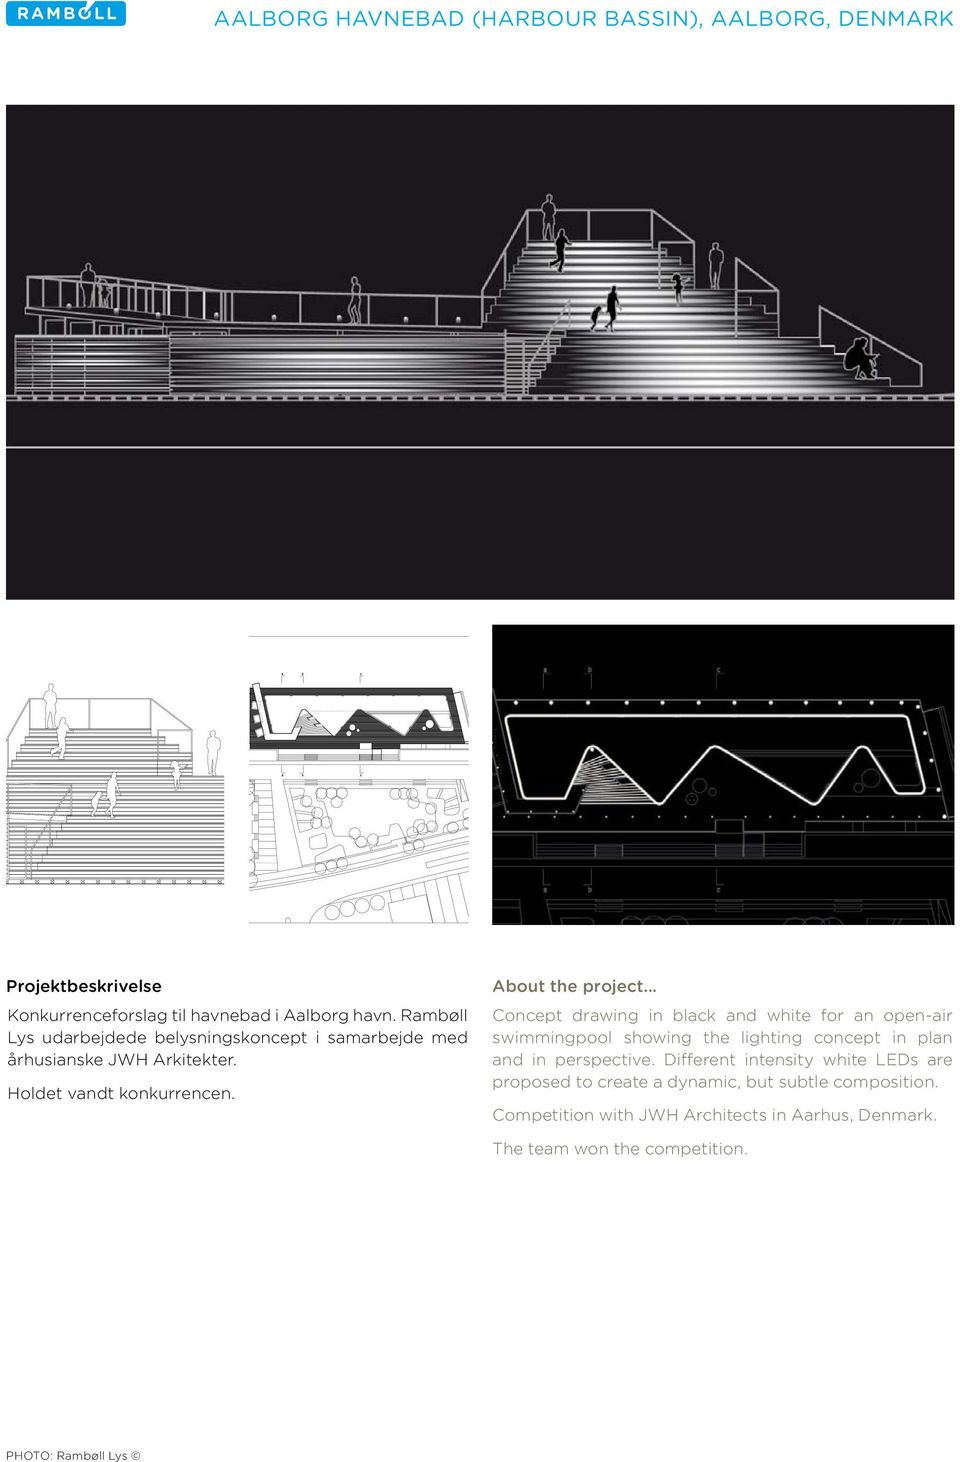 Concept drawing in black and white for an open-air swimmingpool showing the lighting concept in plan and in perspective.